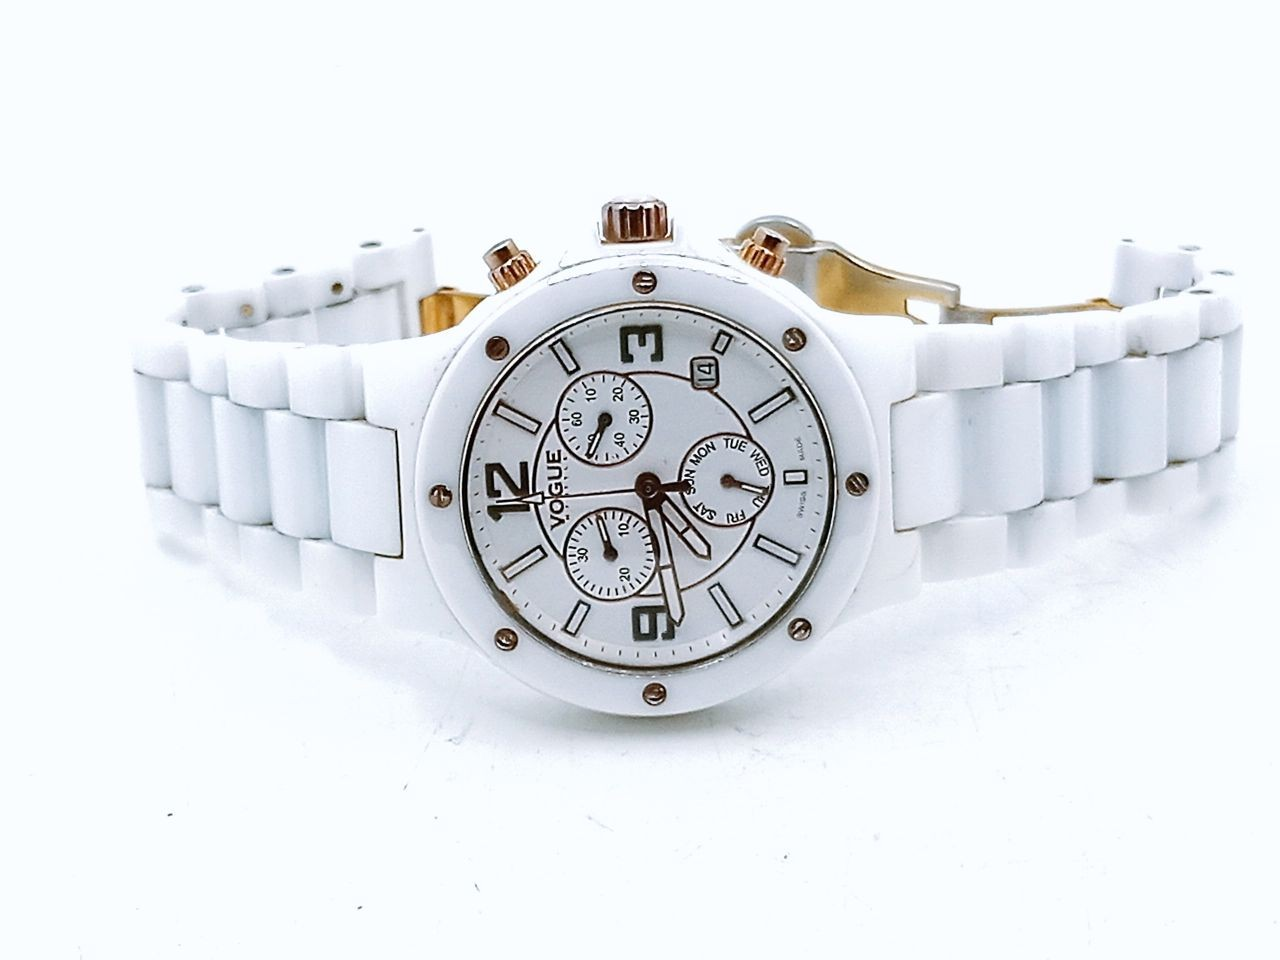 VOGUE VOC-144-CW-1 CERAMIC WATCH